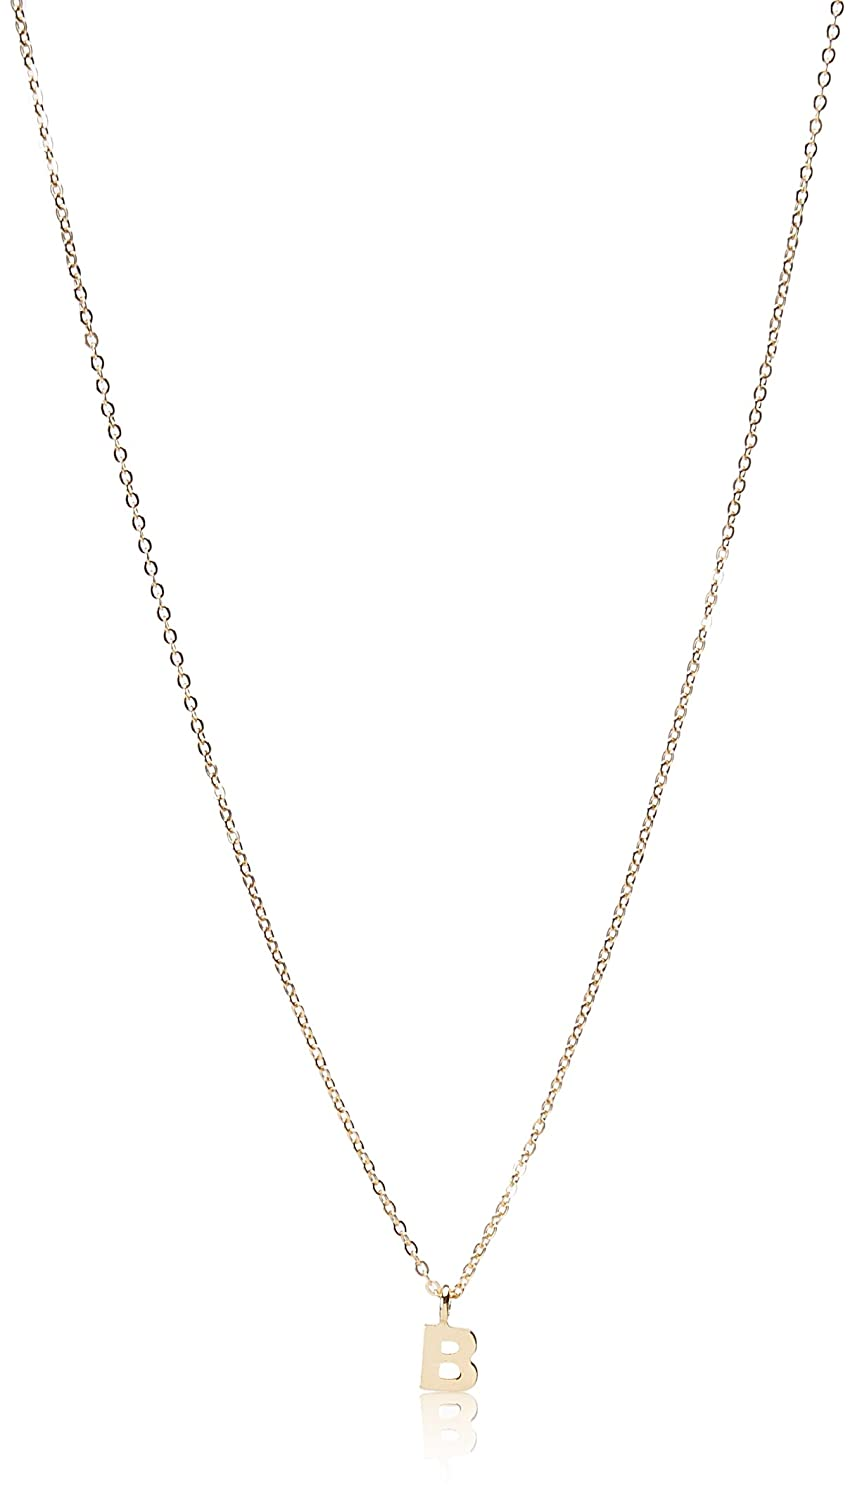 1928 Jewelry Gold-Tone 7mm Initial Pendant Necklace, 20 20 44559